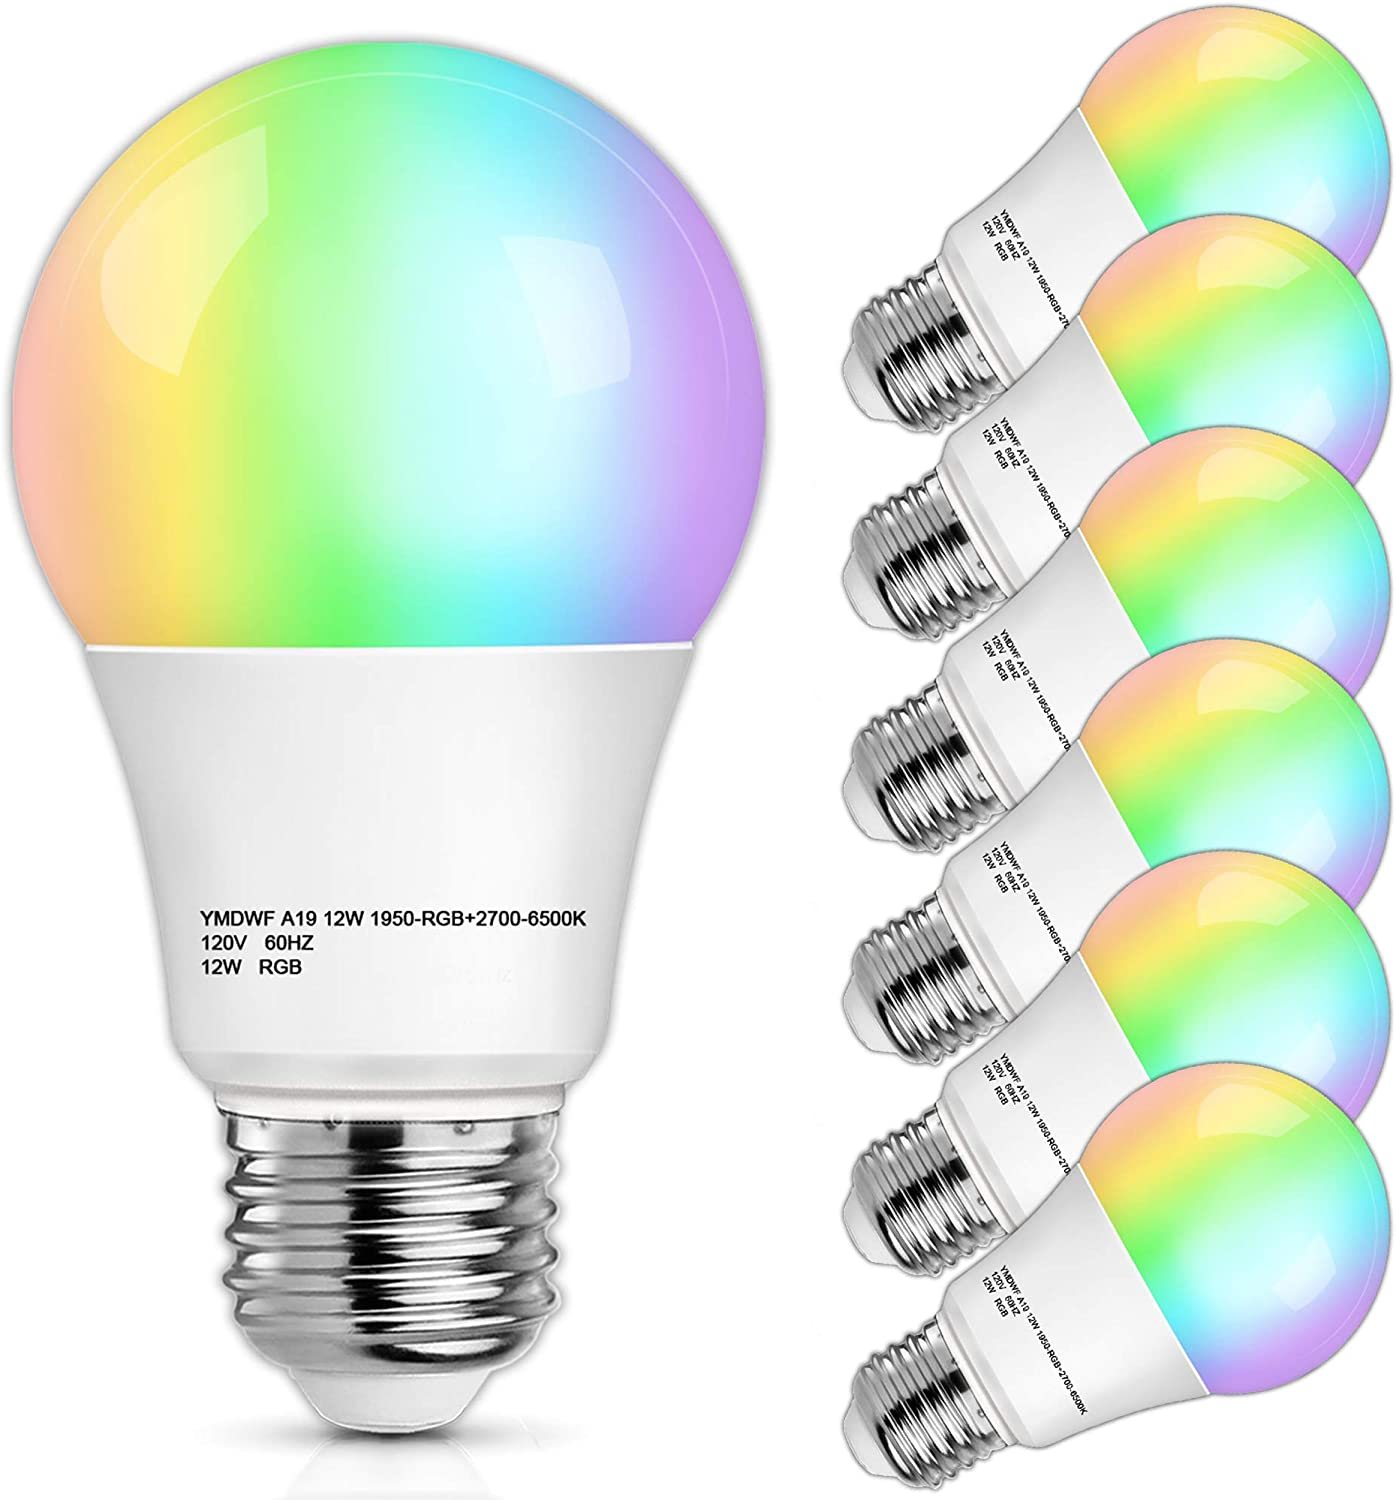 Smart WiFi Light Bulb, 12W A19 LED RGB Bulbs 100 Watt Equivalent, Dimmable E26 Bulb 1100Lumens, 2700K-6500K, 2.4GHz, Compatible with Alexa, Google Home Assistant, Echo, Siri, No Hub Required, 6-Pack